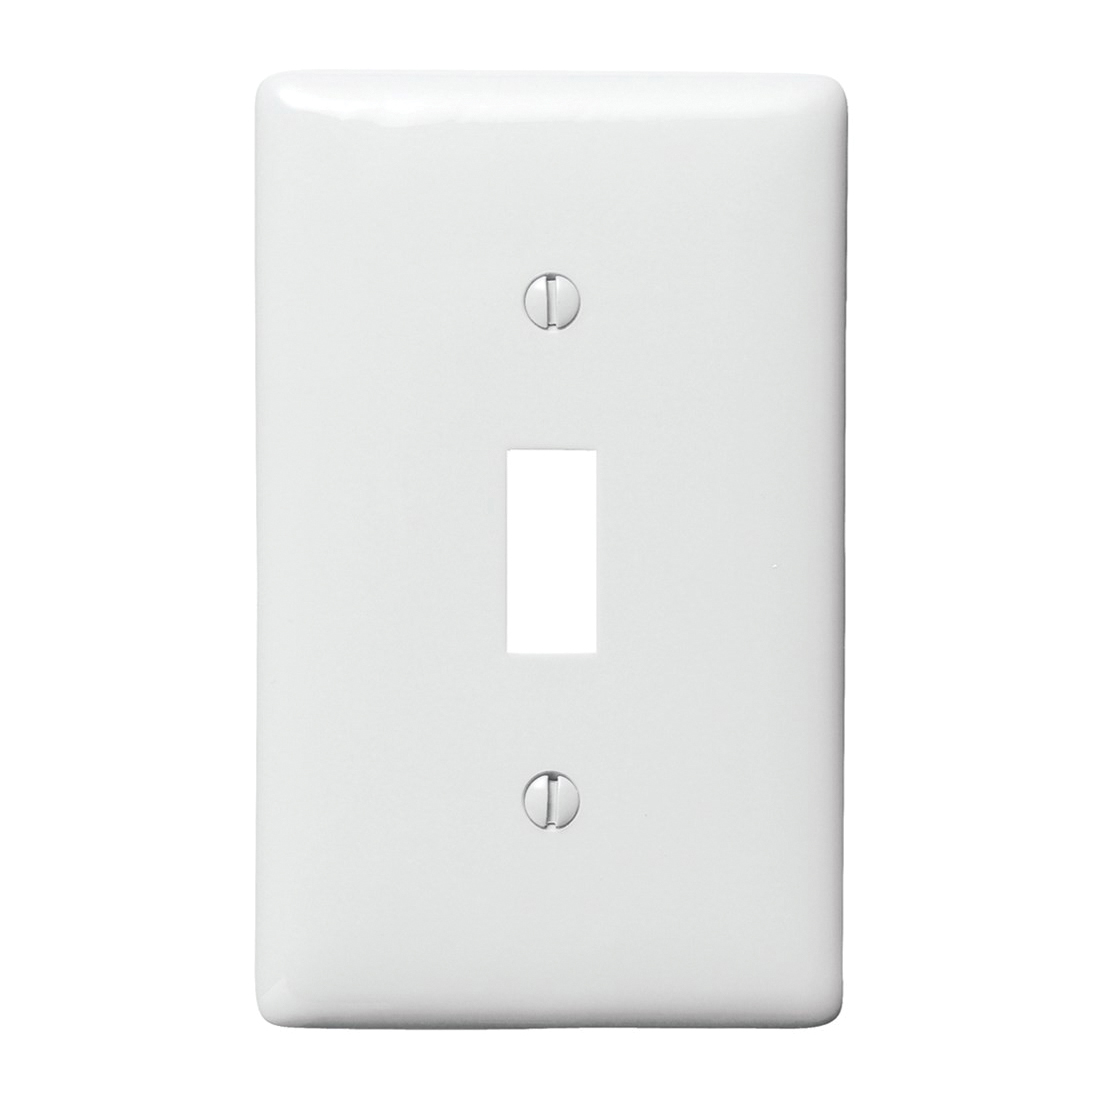 Premise Wiring Np1w Standard Wallplate 1 Gang 463 In H X 288 A Light Switch Ad Image